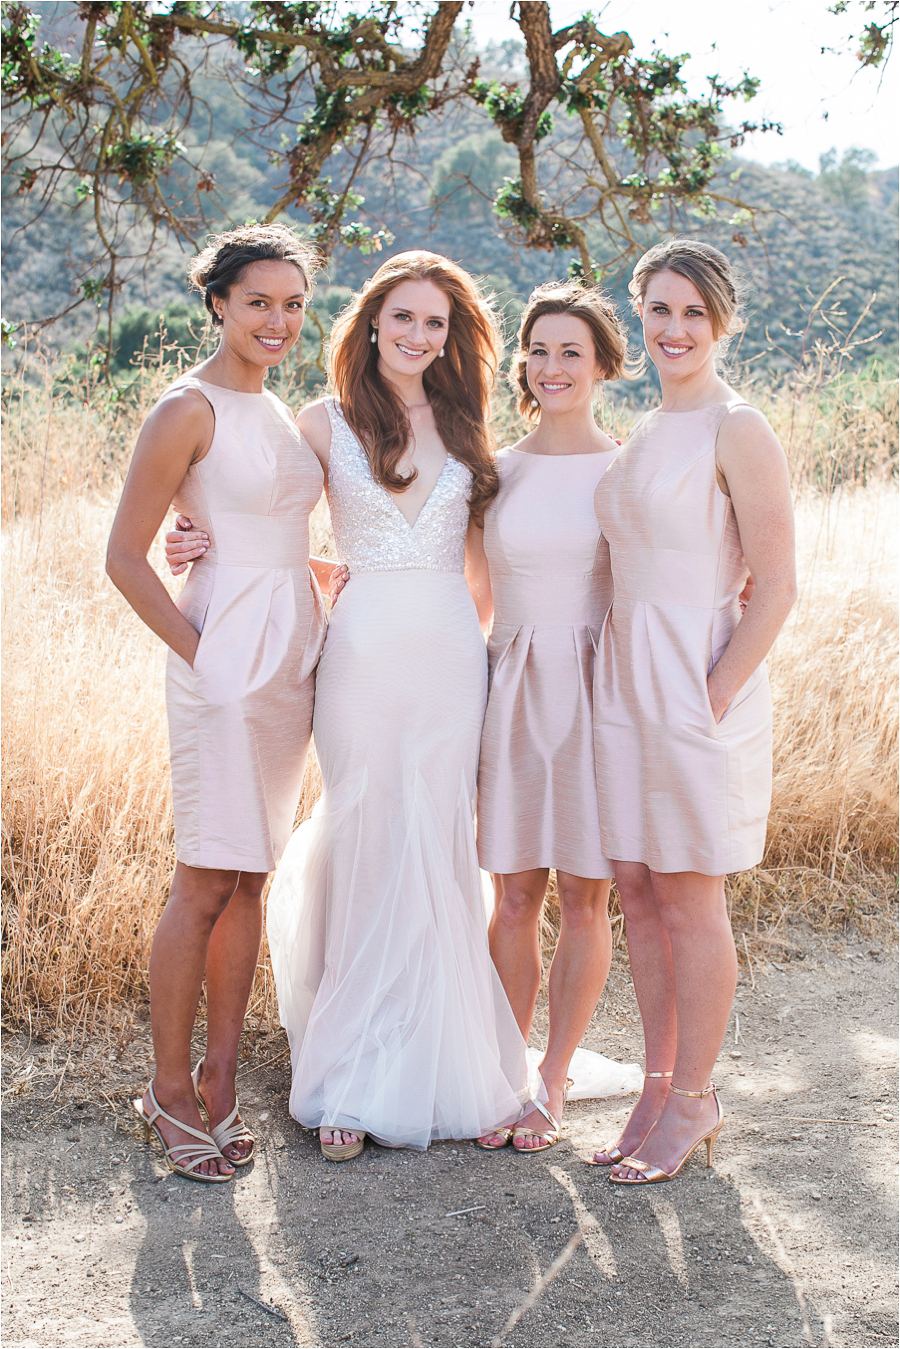 Calabasas Wedding Photographer_Taylor Kinzie Photography-10